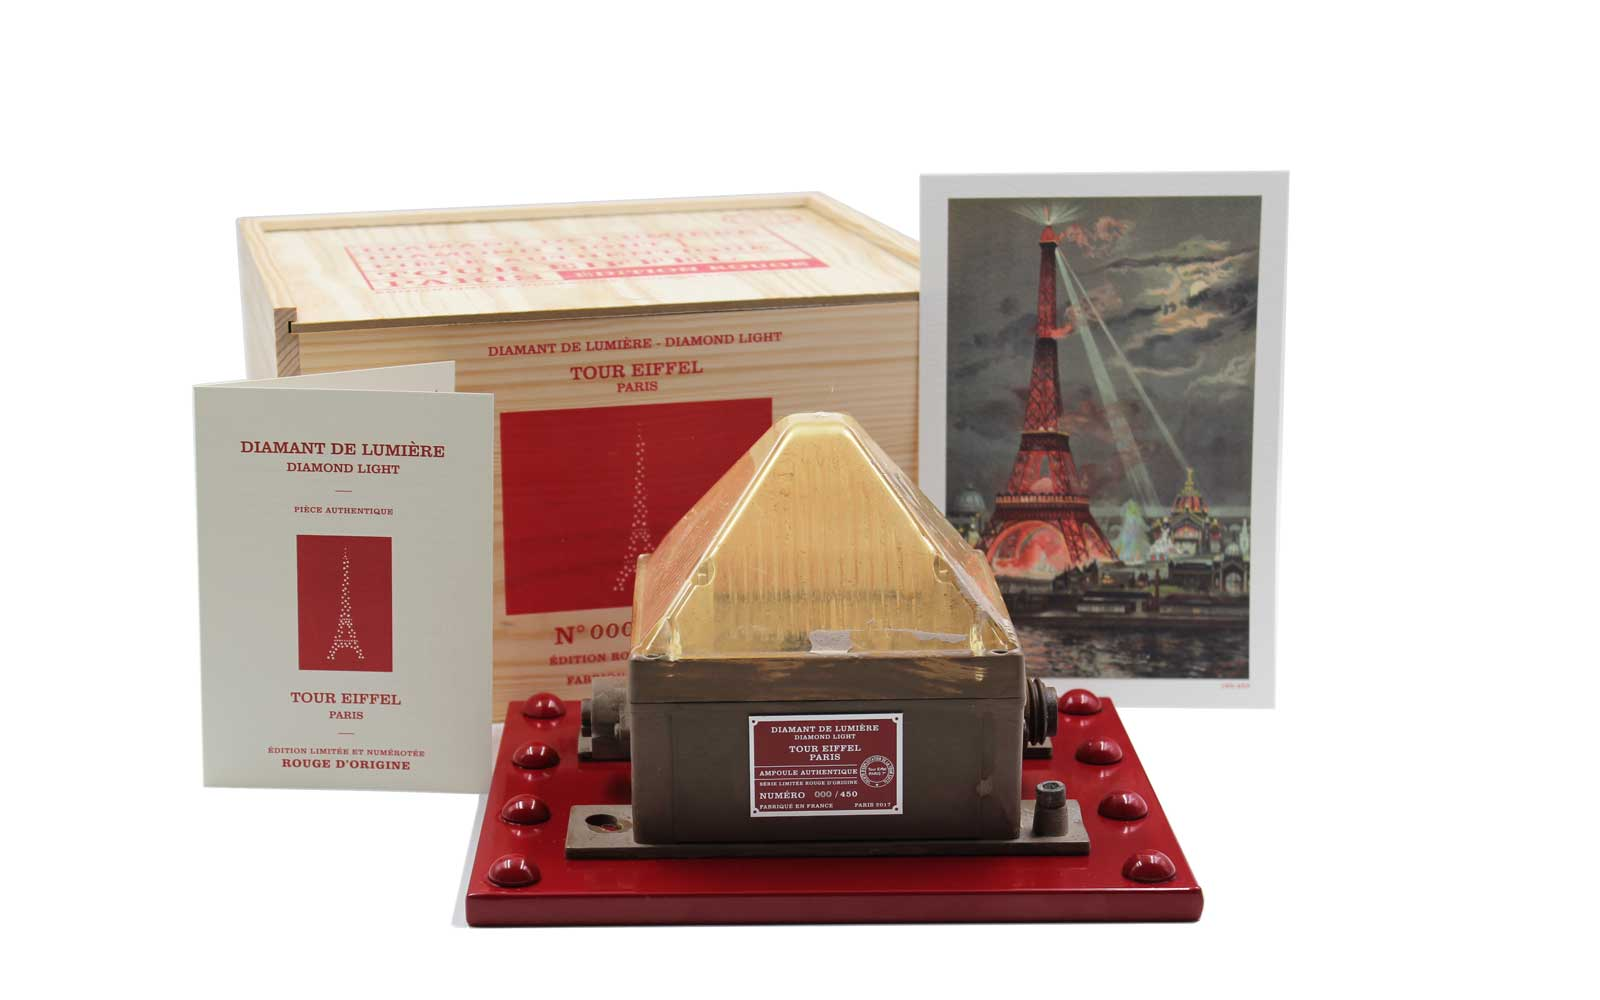 Lightbulb from Eiffel Tower in Paris for sale